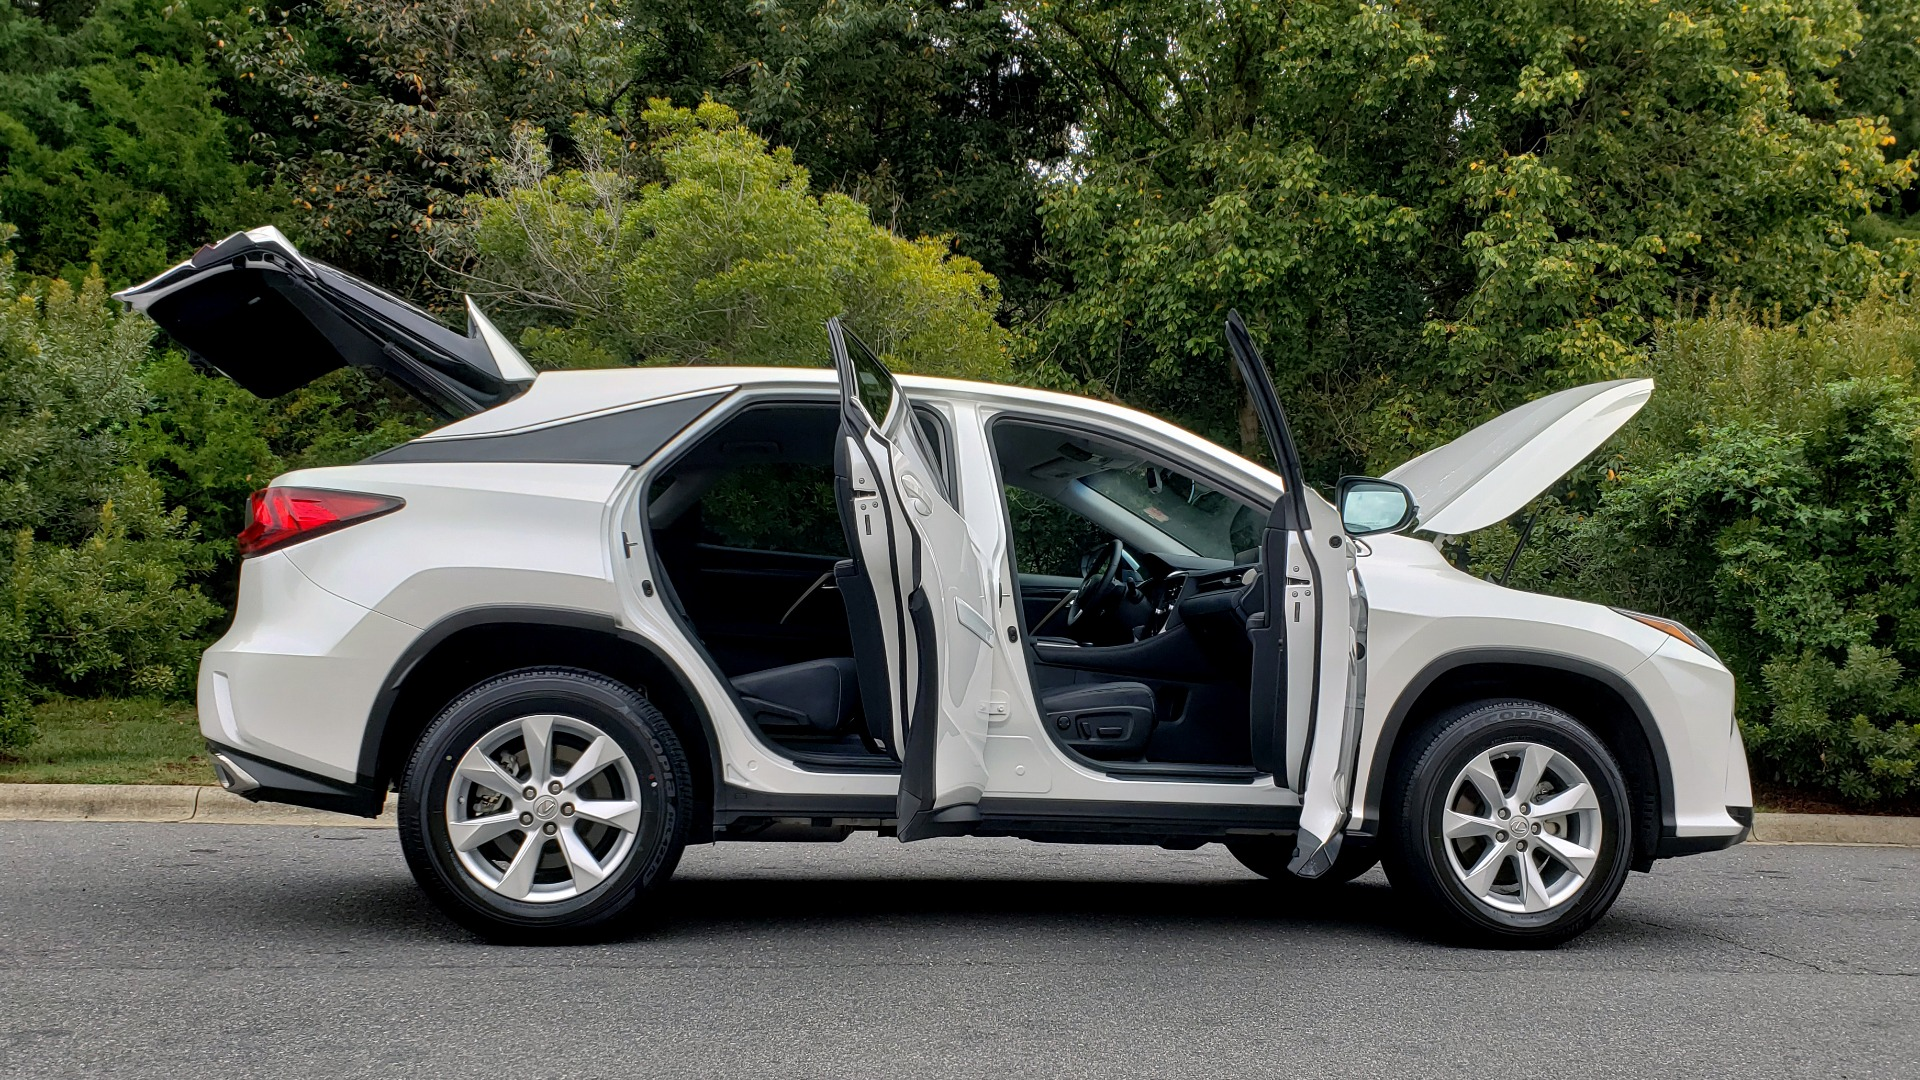 Used 2016 Lexus RX 350 FWD / 4-DR / 3.5L V6 / 8-SPD AUTO / LEATHER / REARVIEW for sale Sold at Formula Imports in Charlotte NC 28227 11